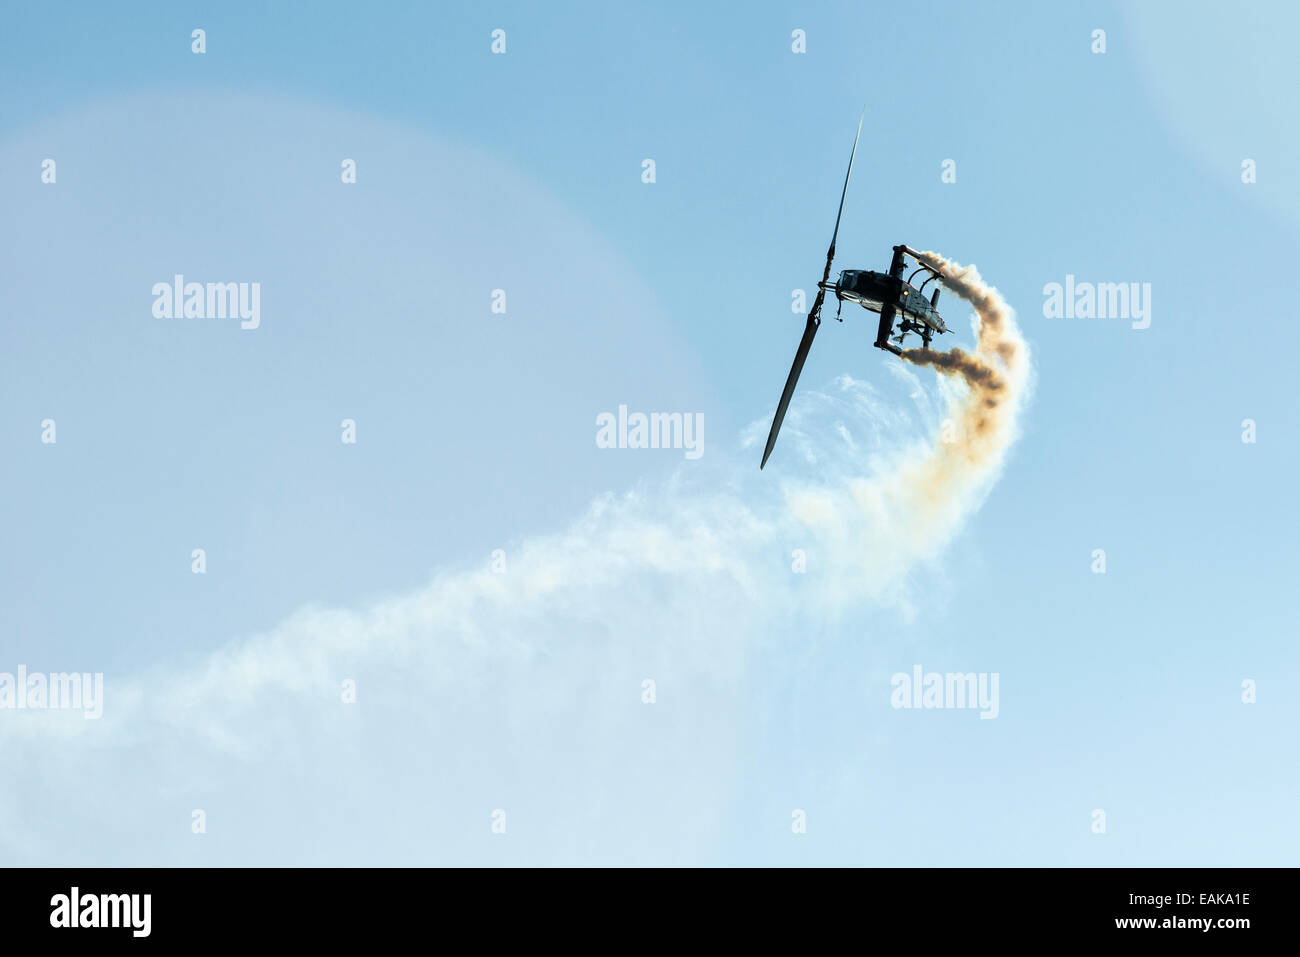 A helicopter, releasing smoke, is performing stunts in the air, Zeltweg, Steiermark, Austria - Stock Image